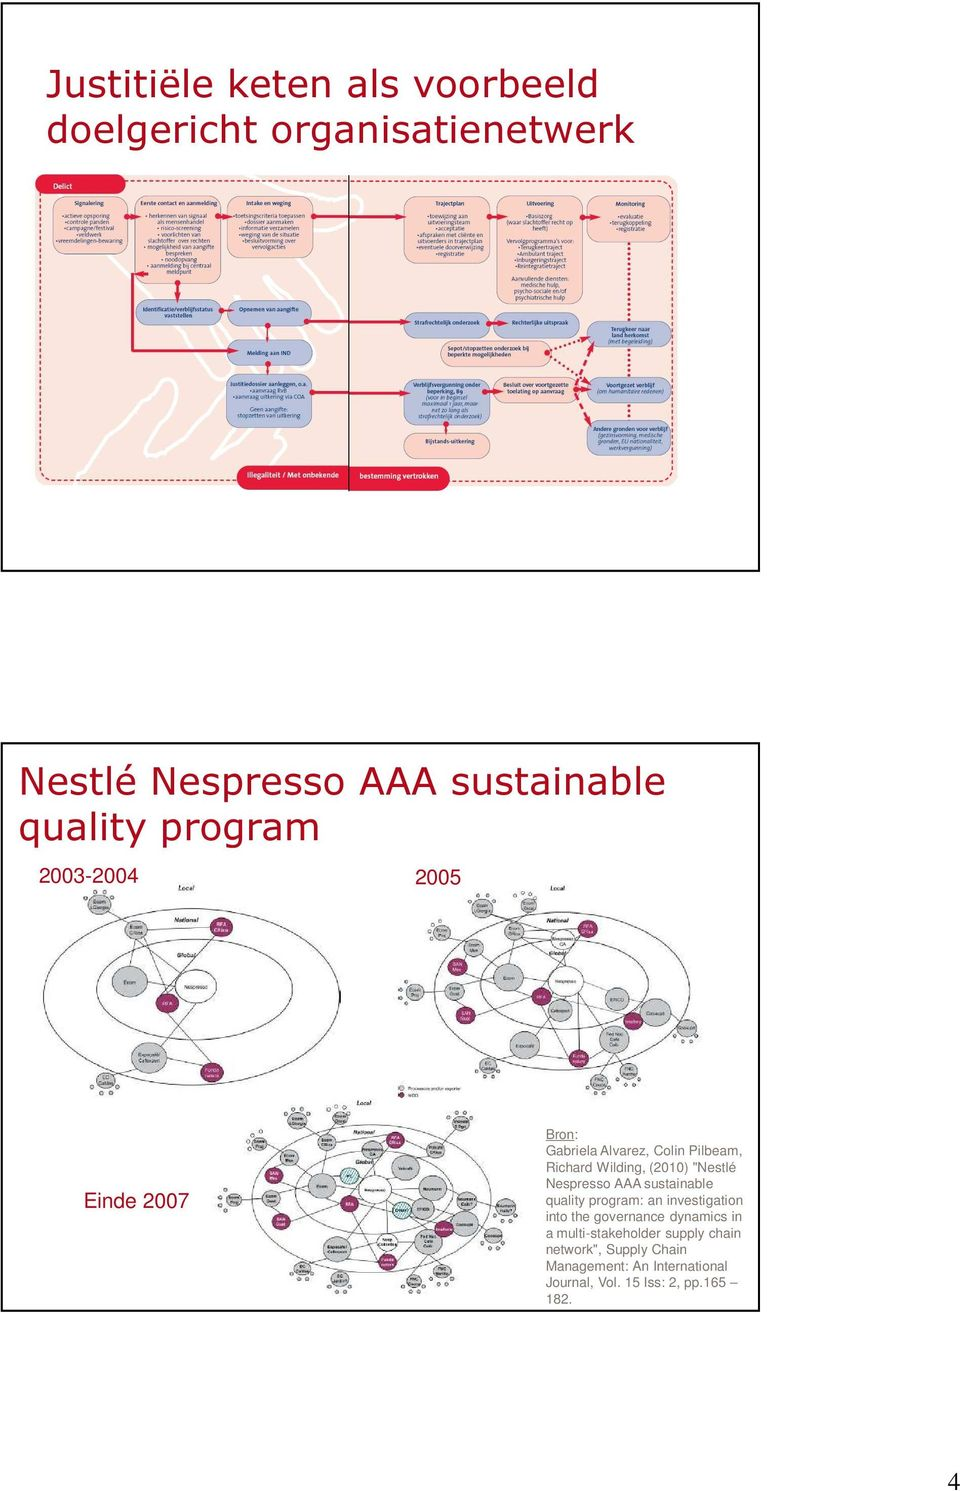 Nespresso AAA sustainable quality program: an investigation into the governance dynamics in a